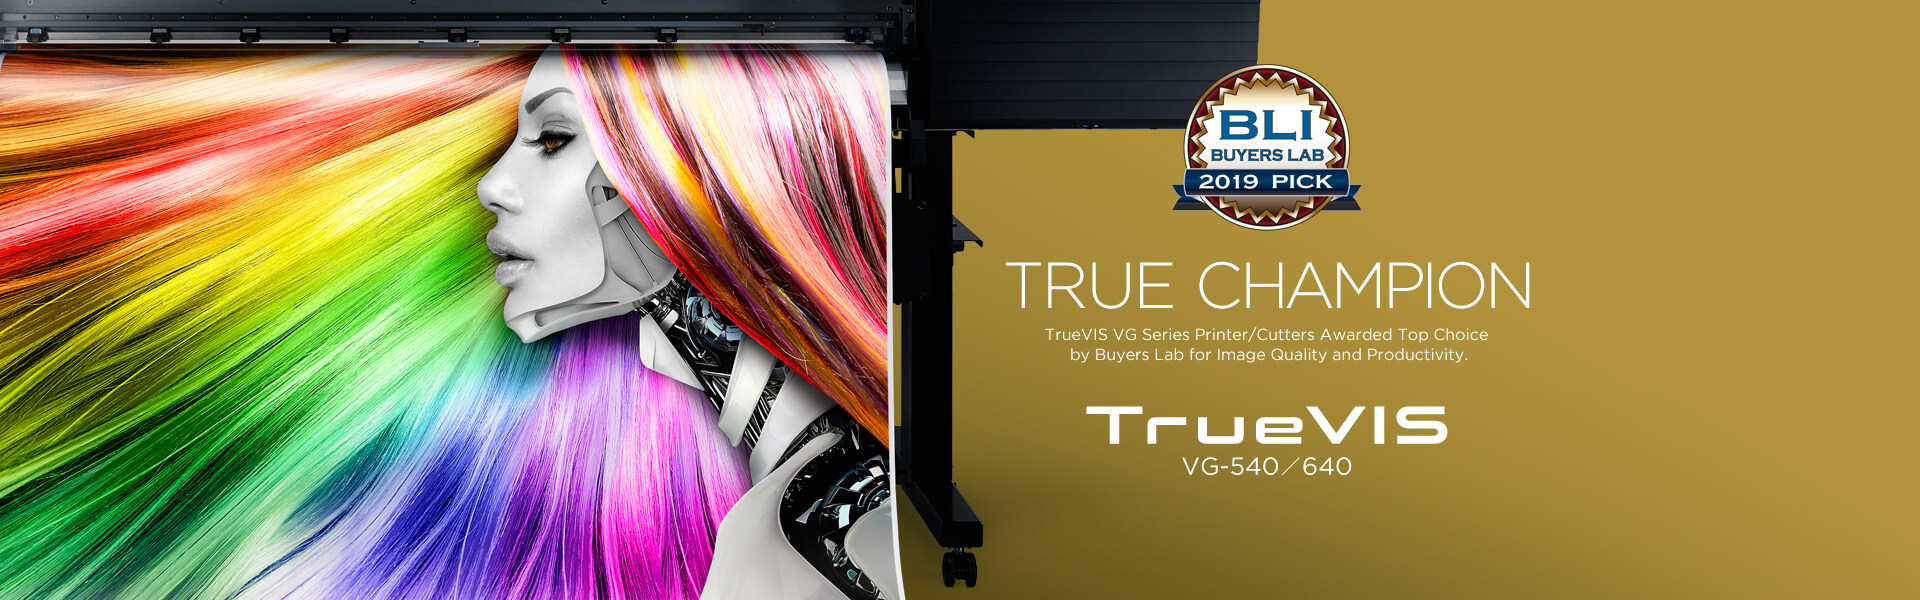 TrueVIS Printer/Cutters Awarded Top Honors from Buyers Lab